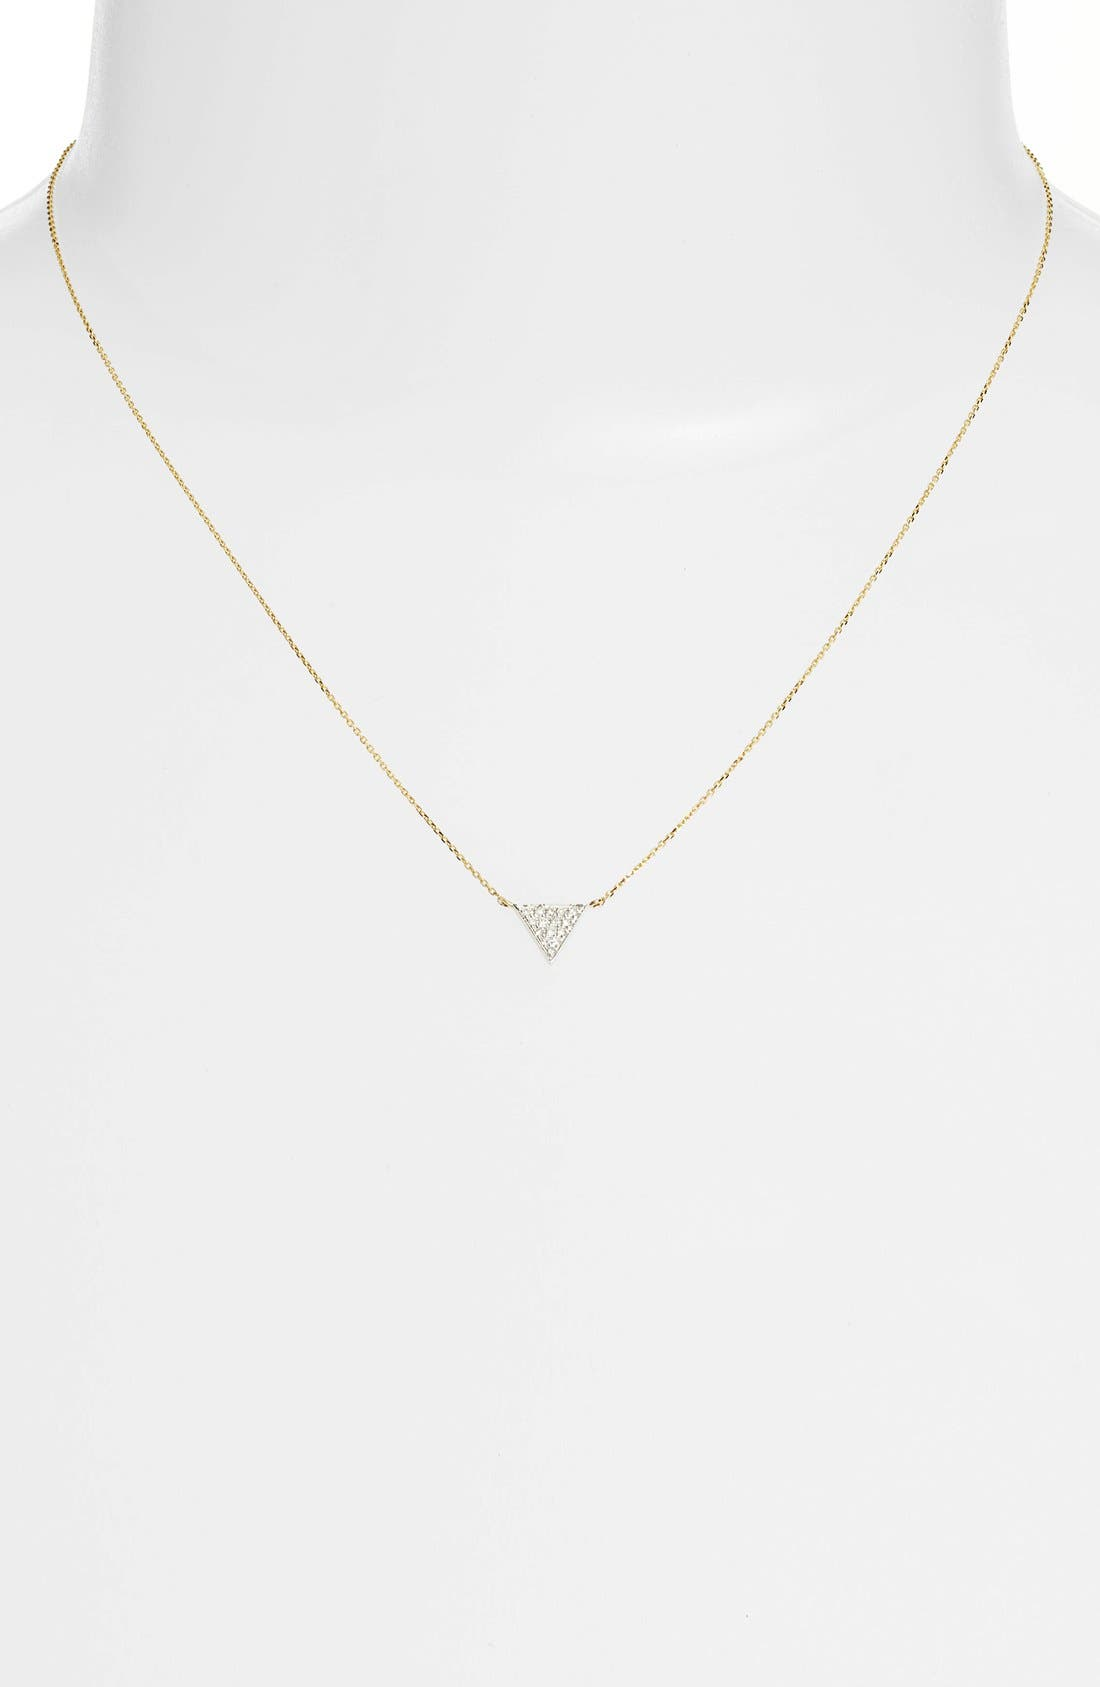 DANA REBECCA DESIGNS, 'Emily Sarah' Diamond Triangle Pendant Necklace, Alternate thumbnail 6, color, YELLOW GOLD